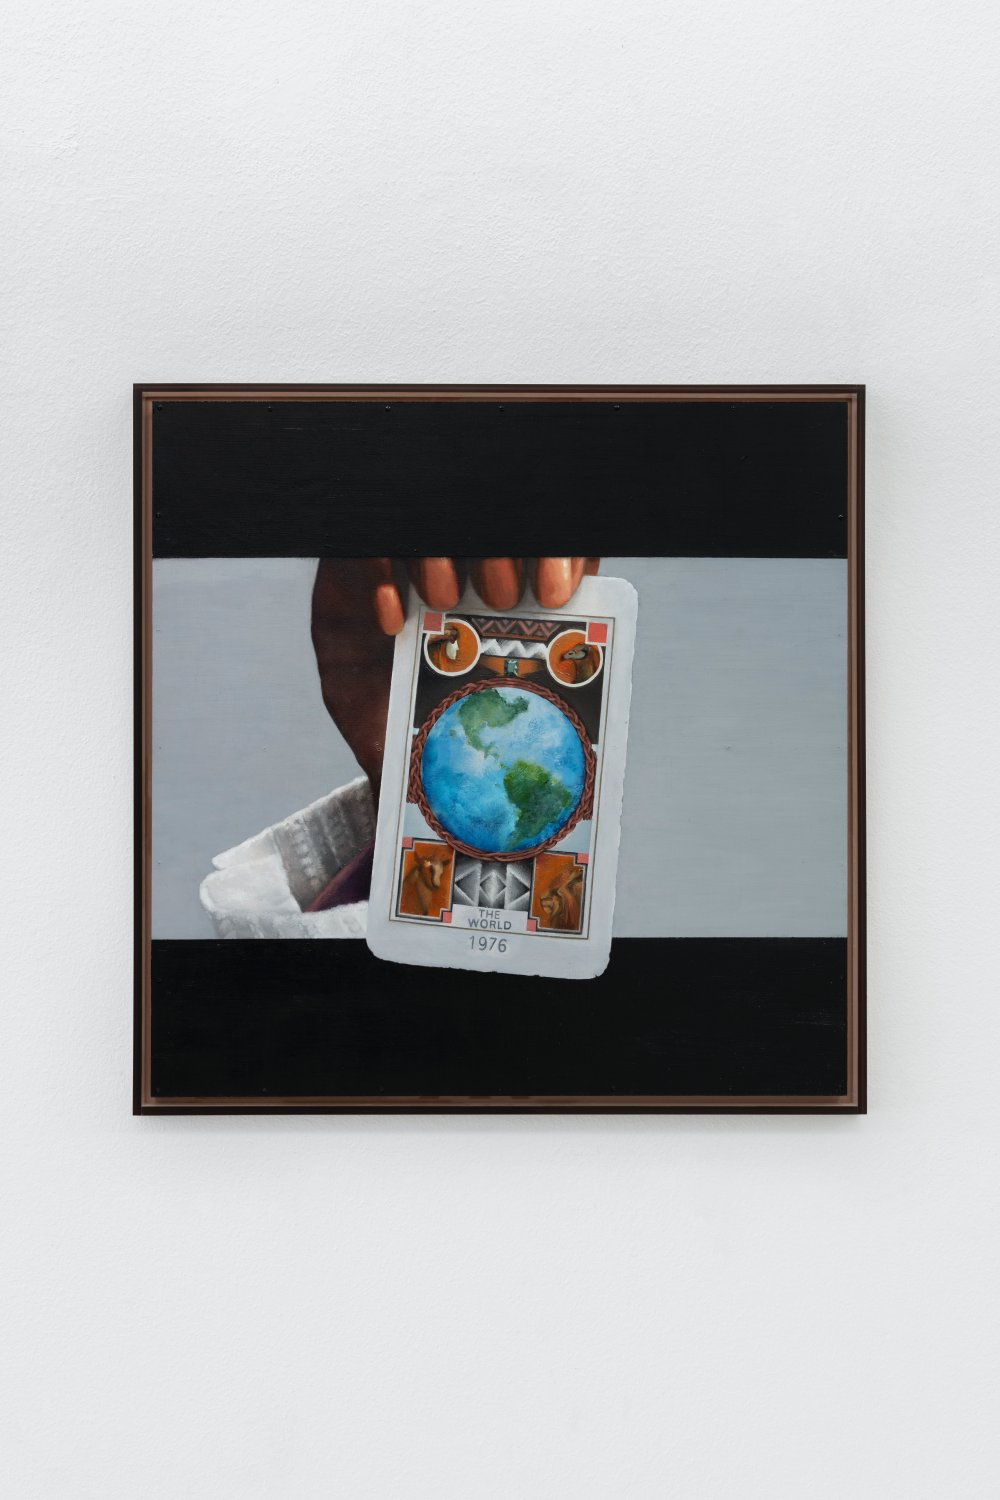 The World, 1976 (Sweet, Sweet Chariot)